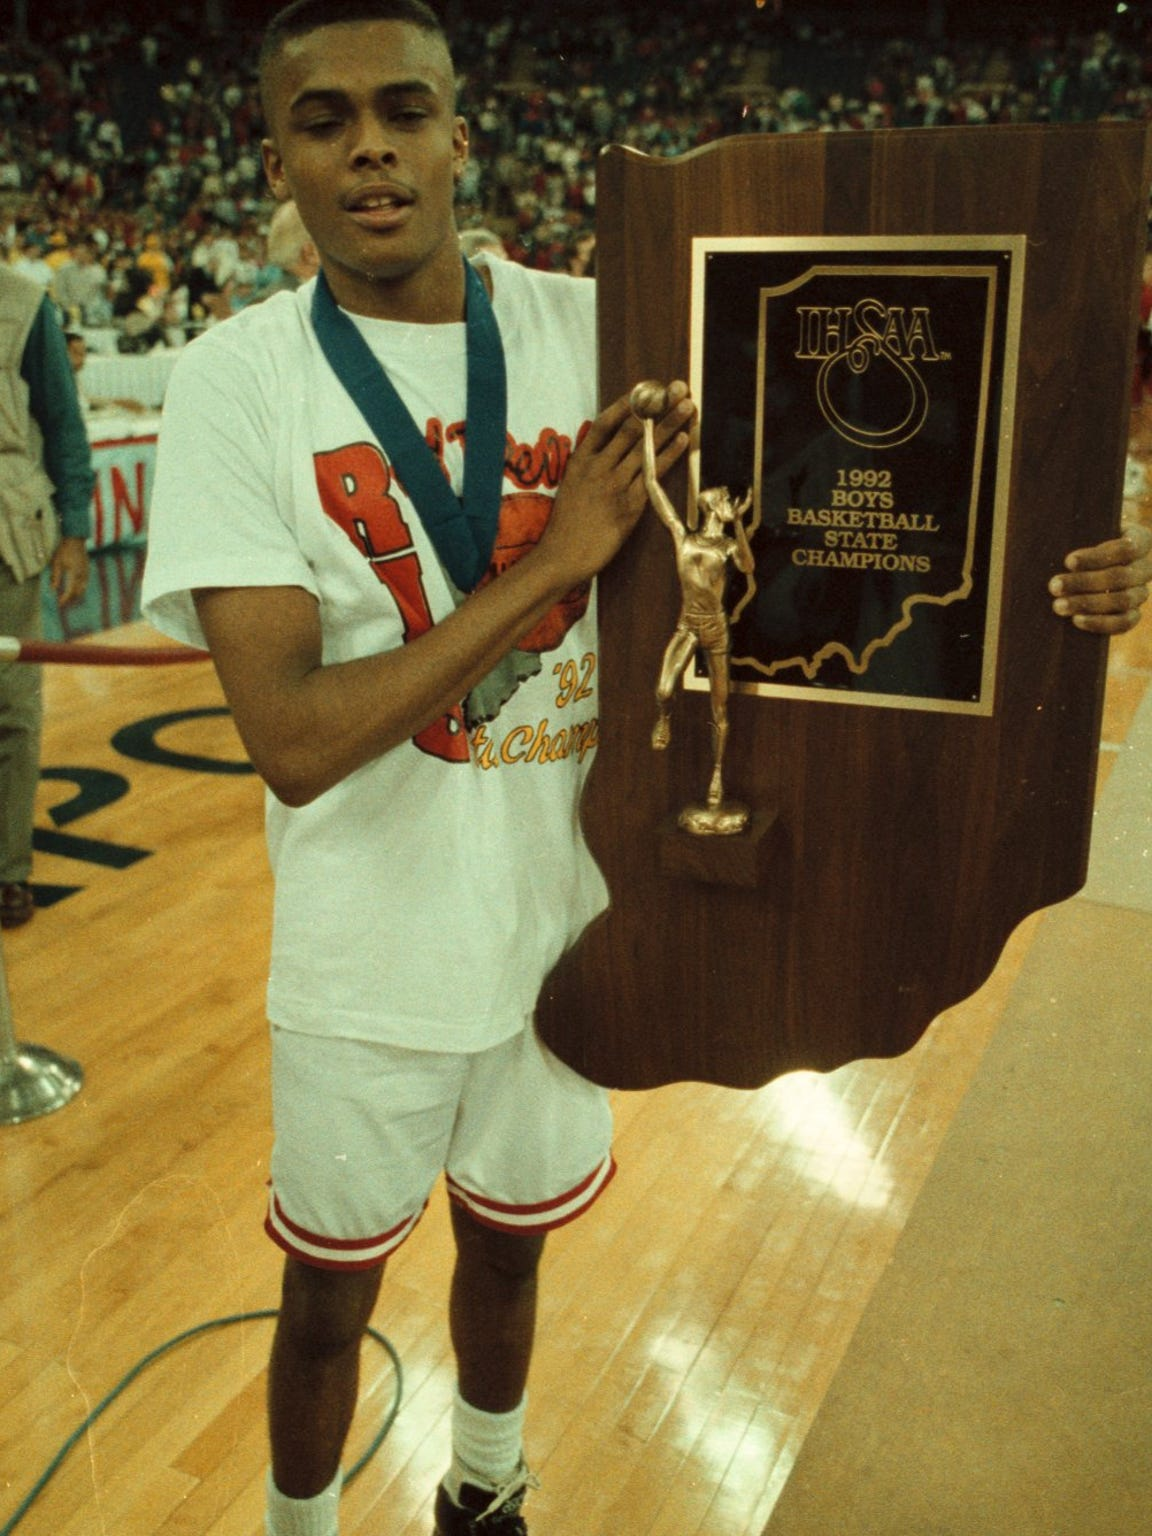 Billy Wright, shown with the Indiana High School Athletic Association (ISHAA) basketball trophy in 1992.